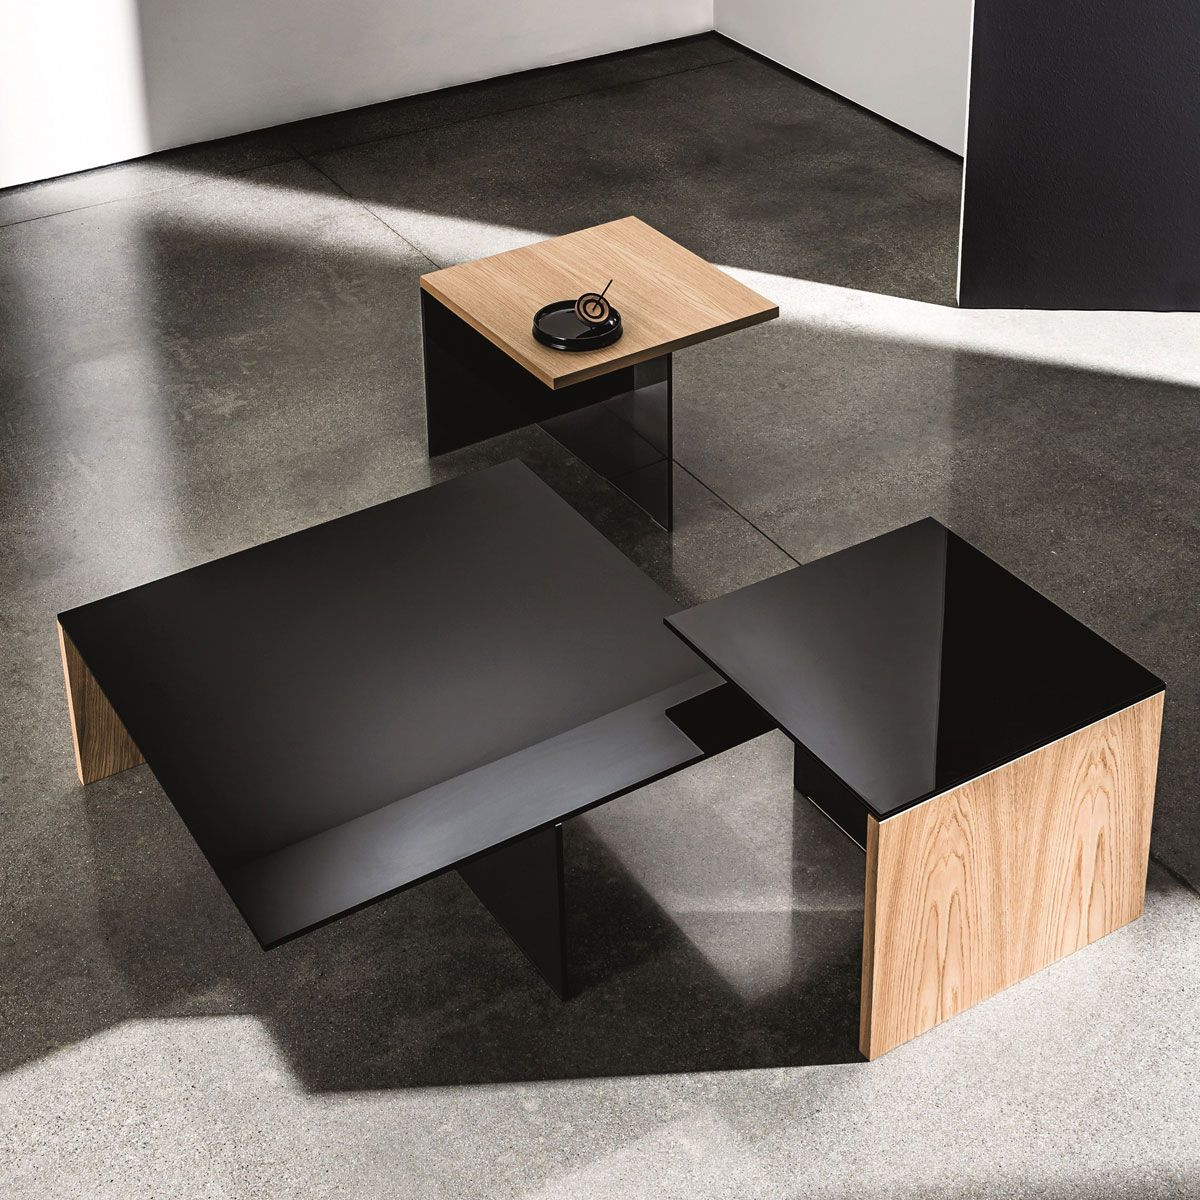 Regolo Square Glass And Wood Coffee Table In 2020 Coffee Table